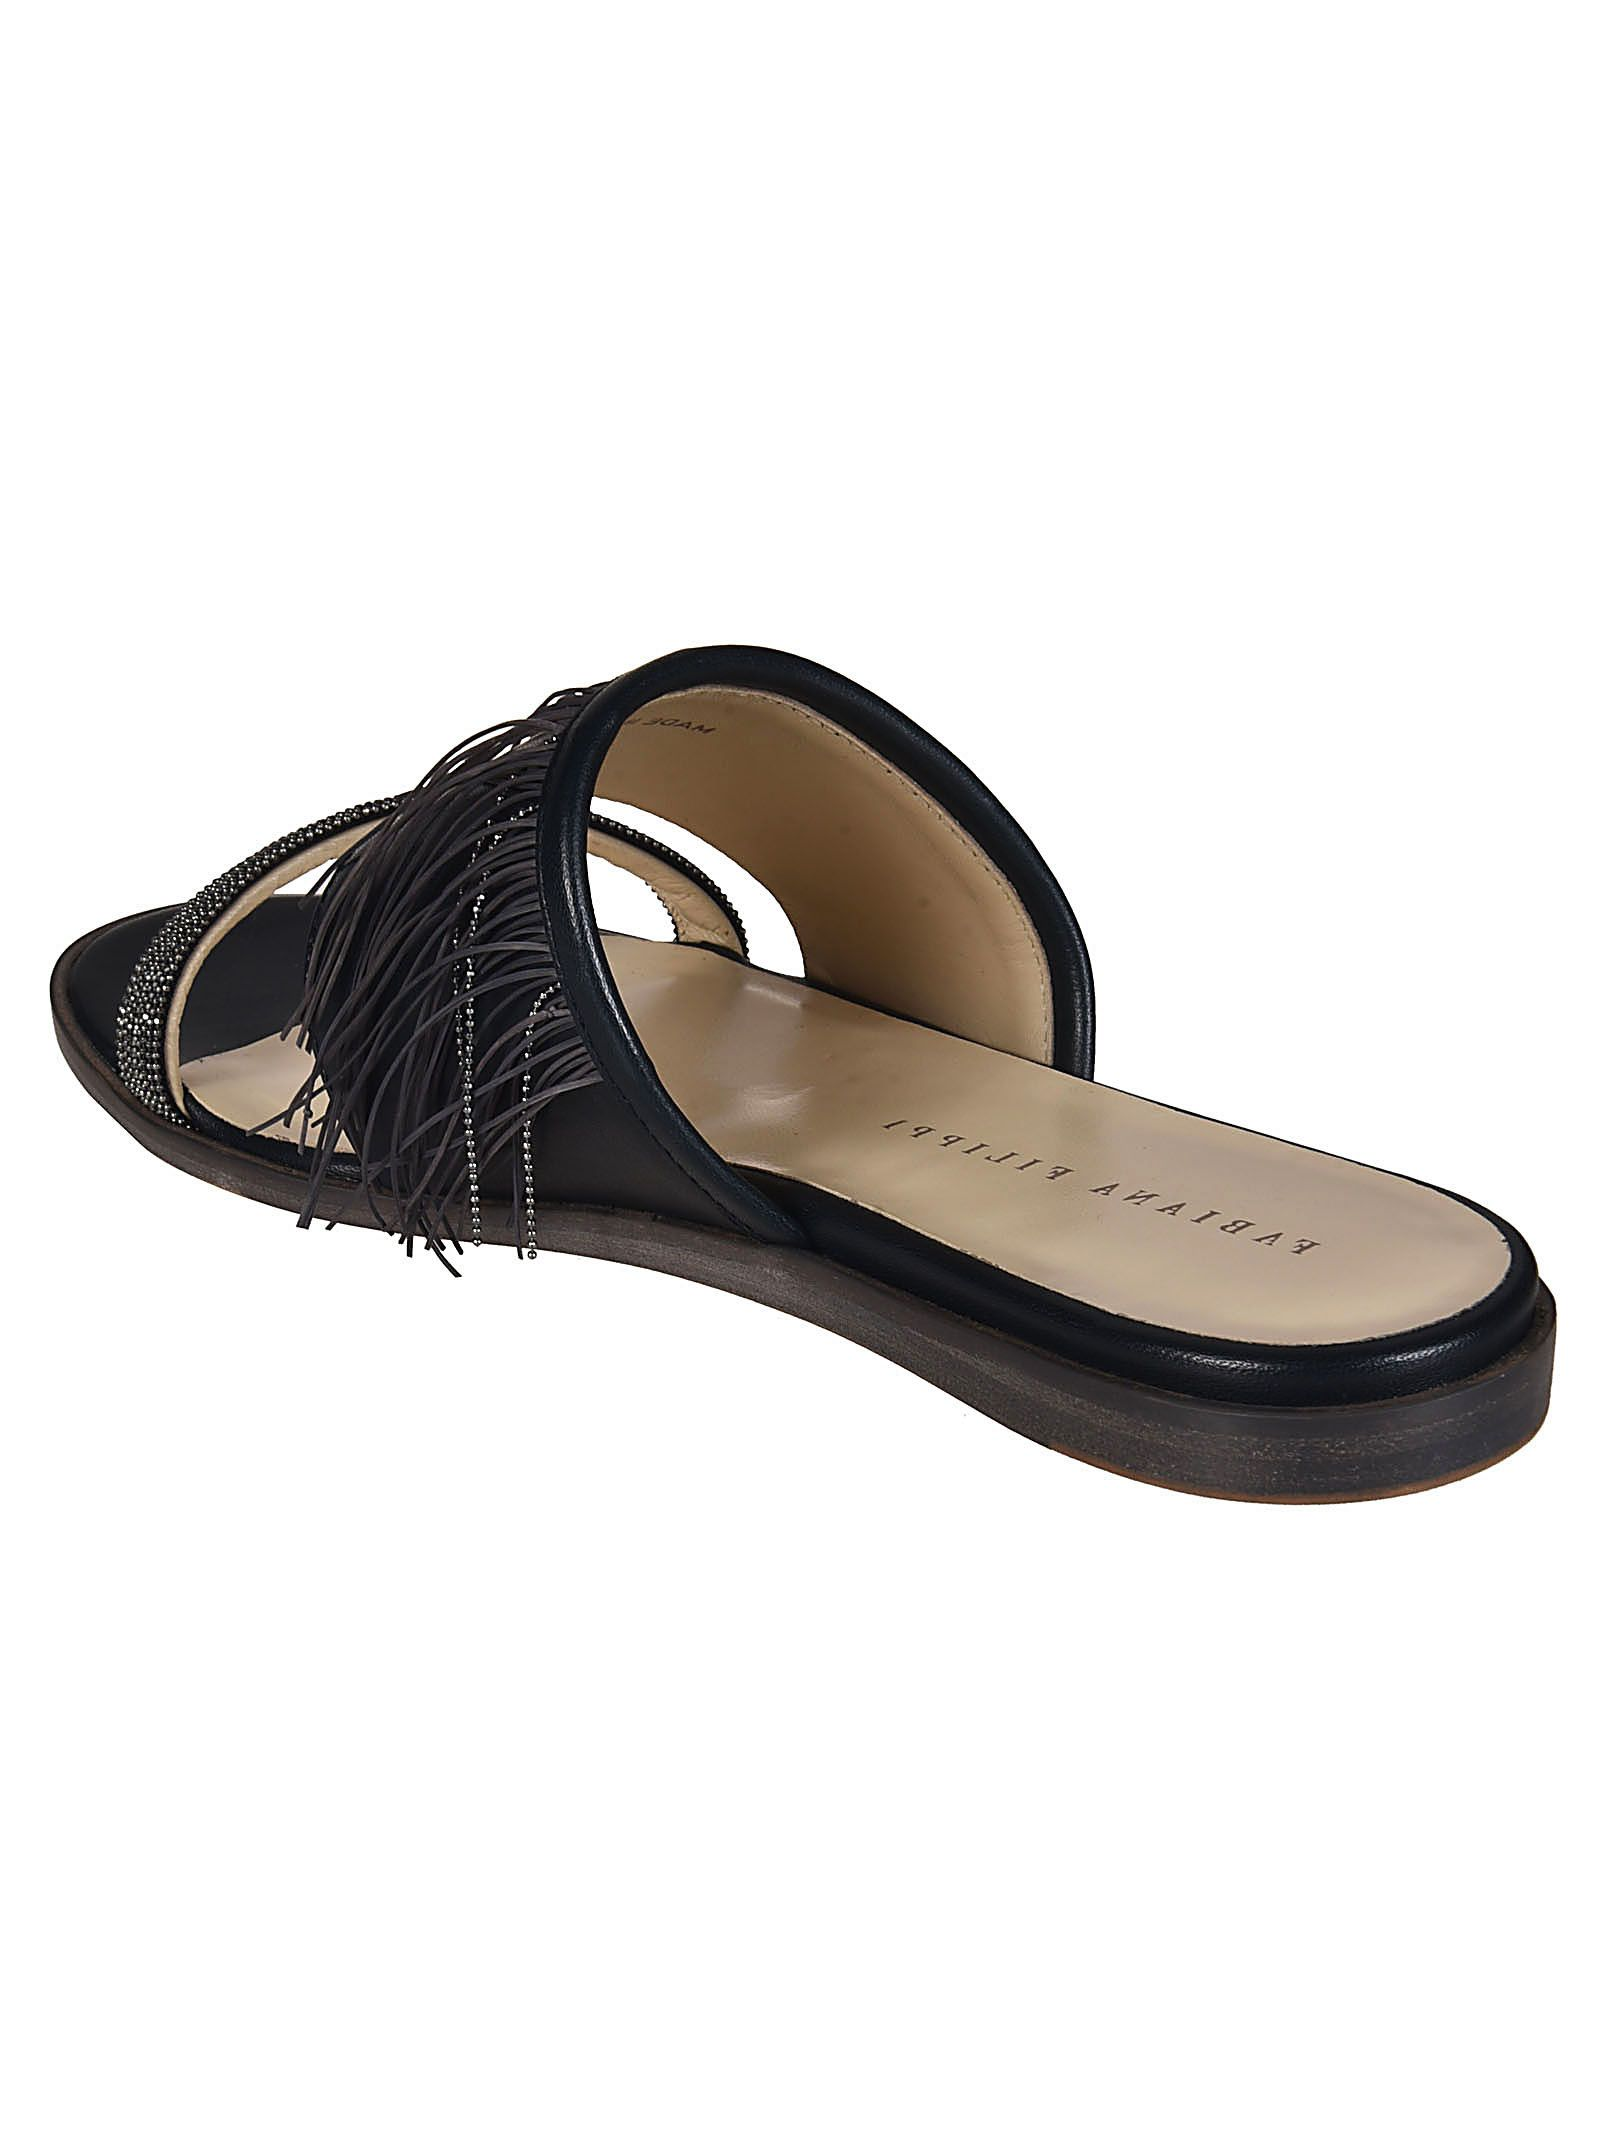 Fabiana Filippi Noble Summer Sliders Clearance Sneakernews Discount New Styles Clearance Manchester Great Sale xOrDed